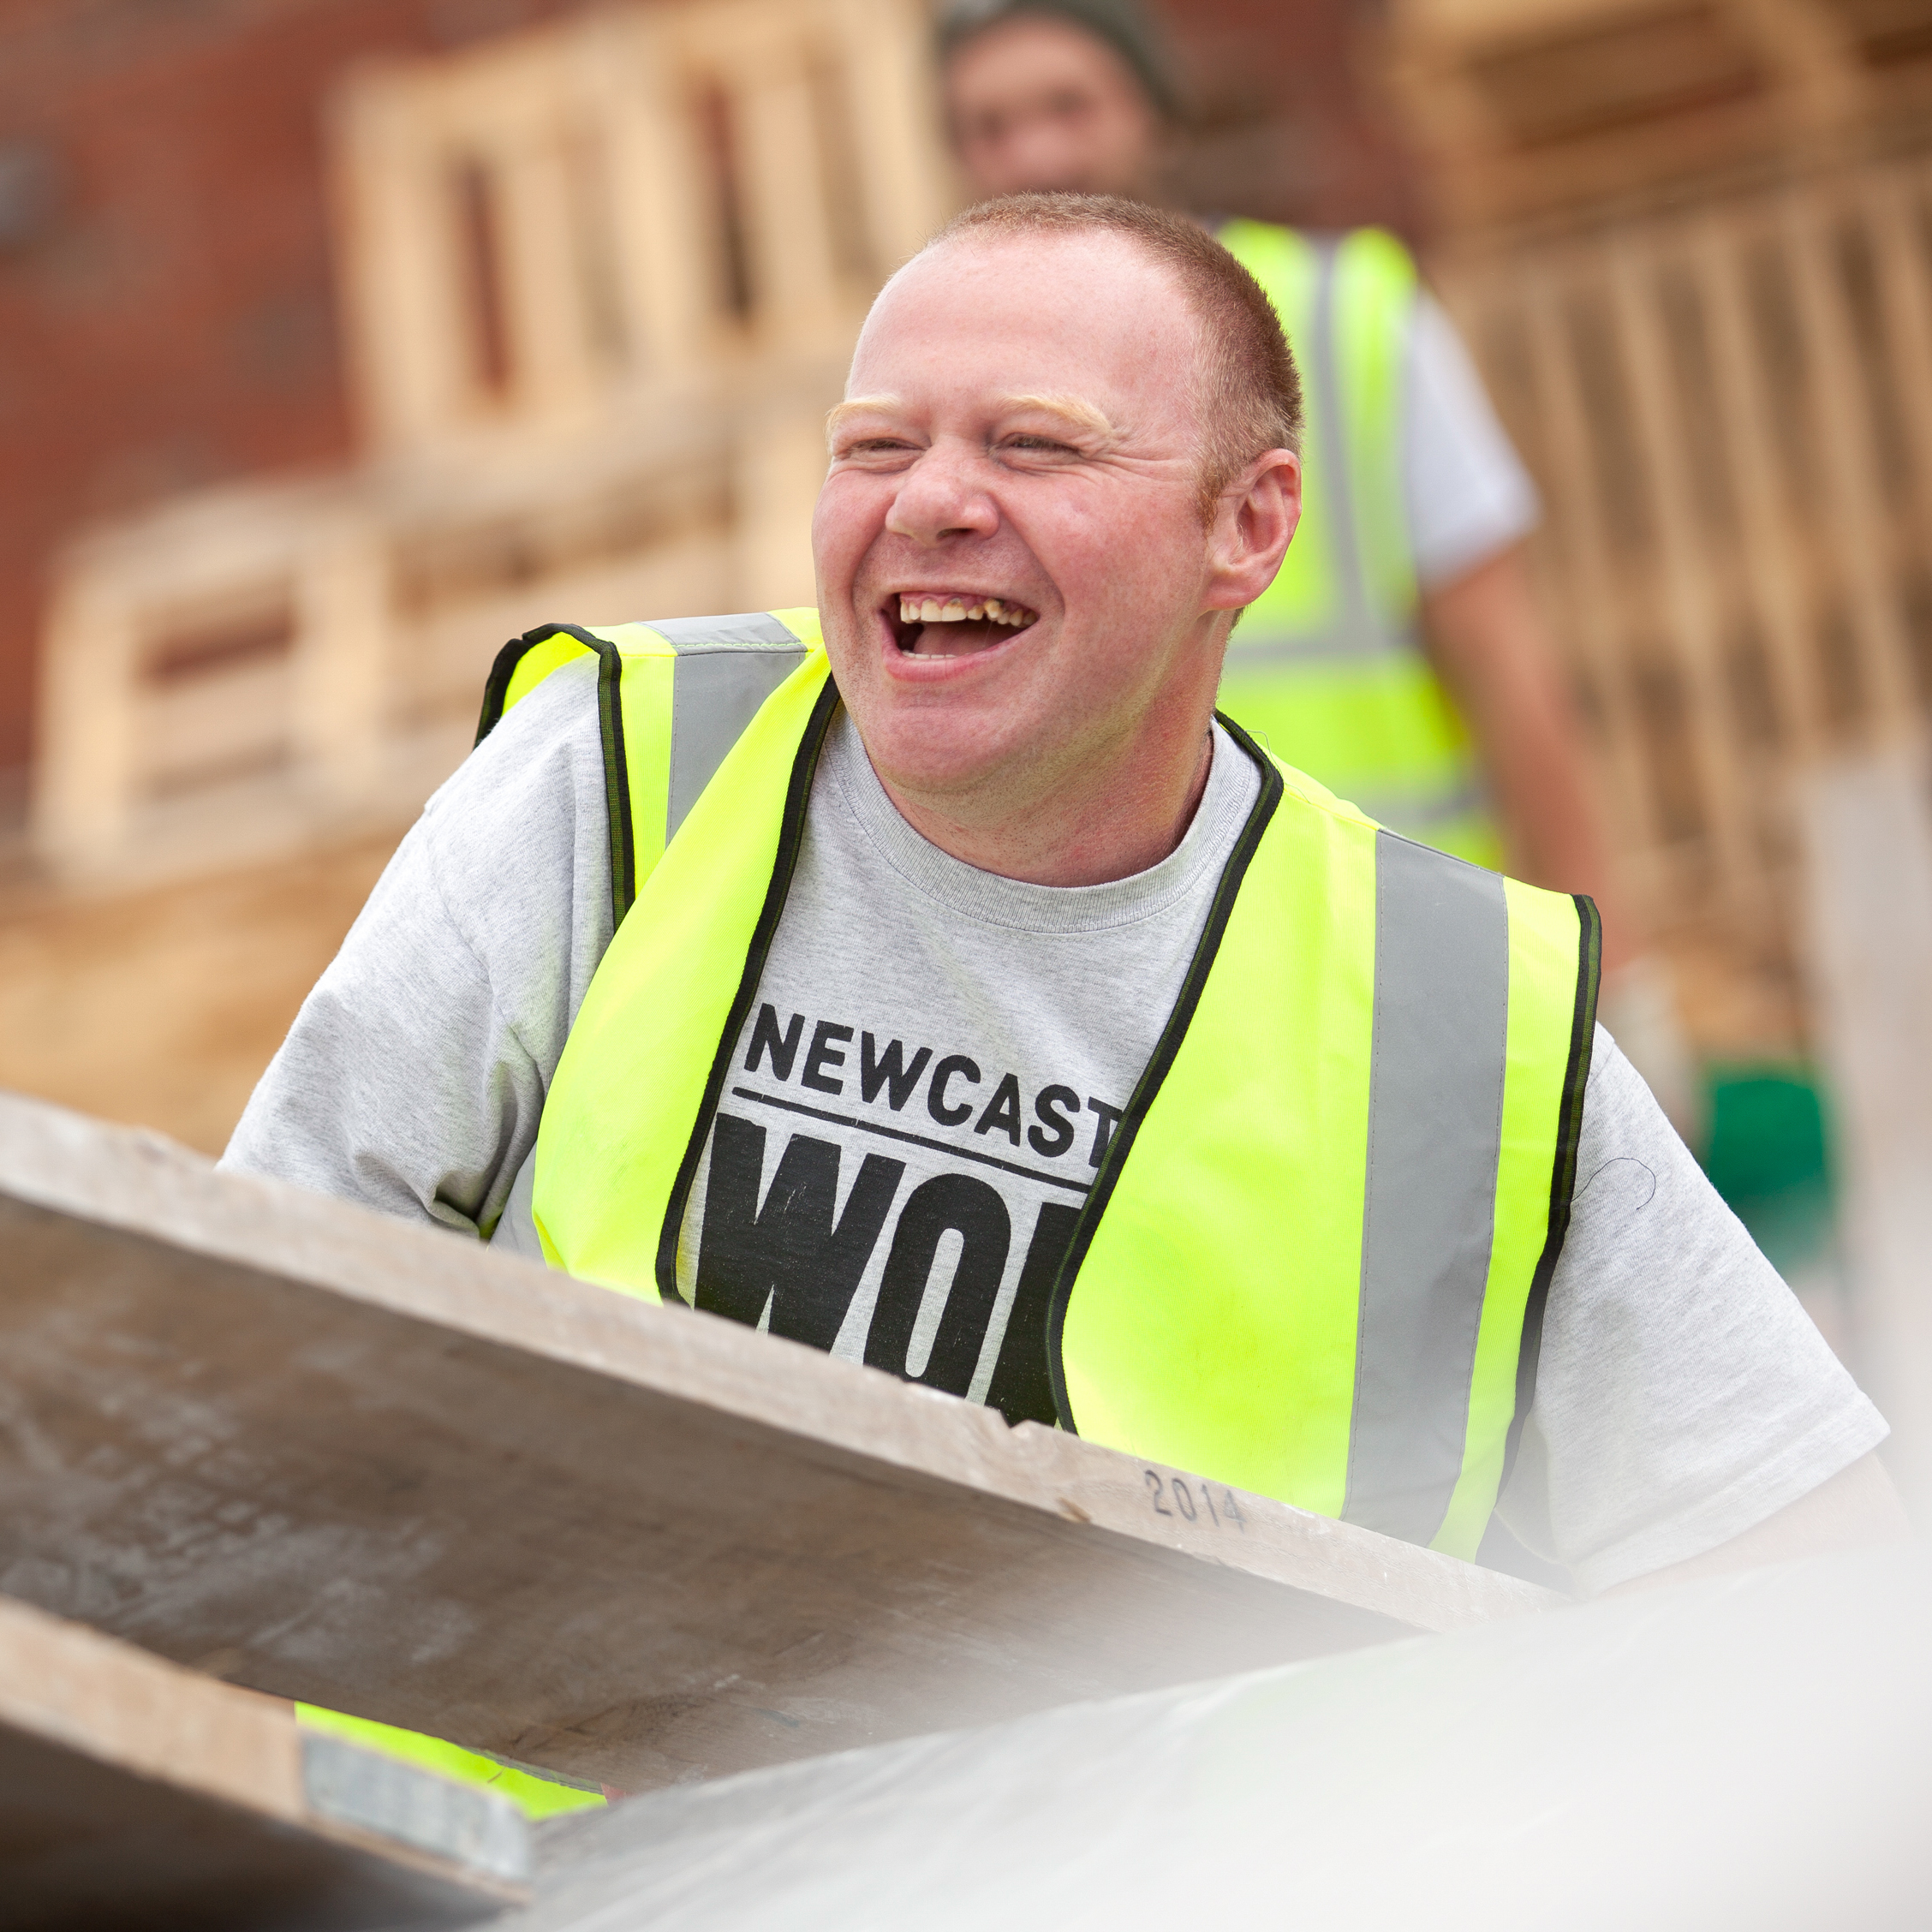 GazzaDriver - Wor Gazza is guaranteed to brighten up your day with his wicked sense of humour. Gary has been part of the team since our second year and is happiest when he's out driving the vans.